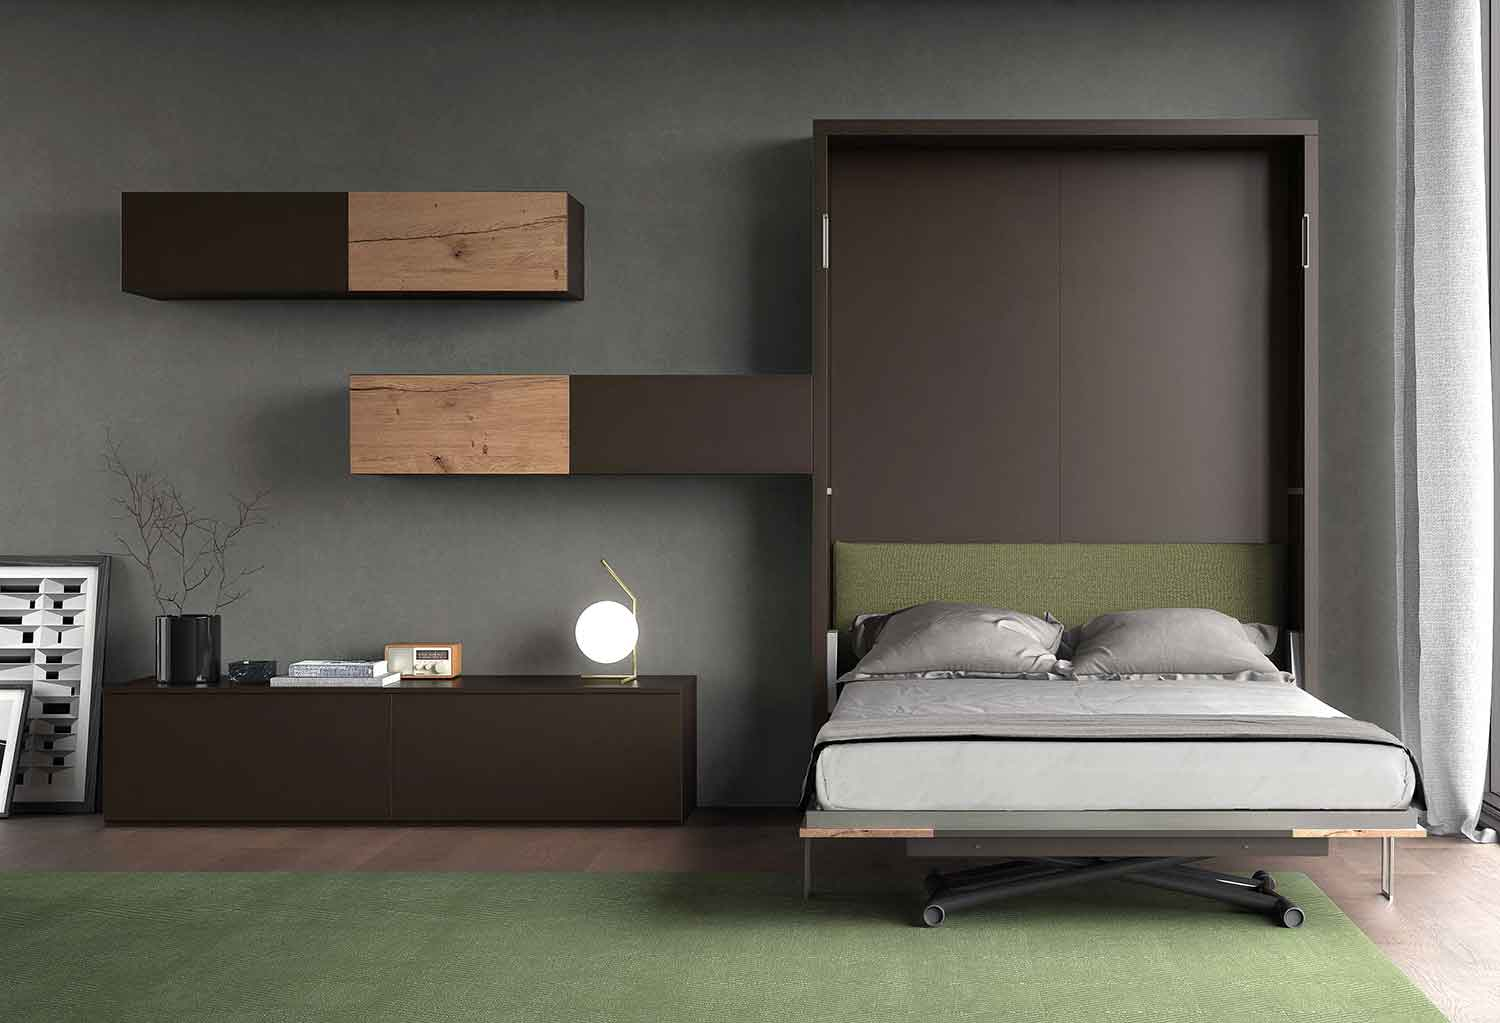 Dynamic Up #13 living room with foldaway double bed - CLEVER.IT